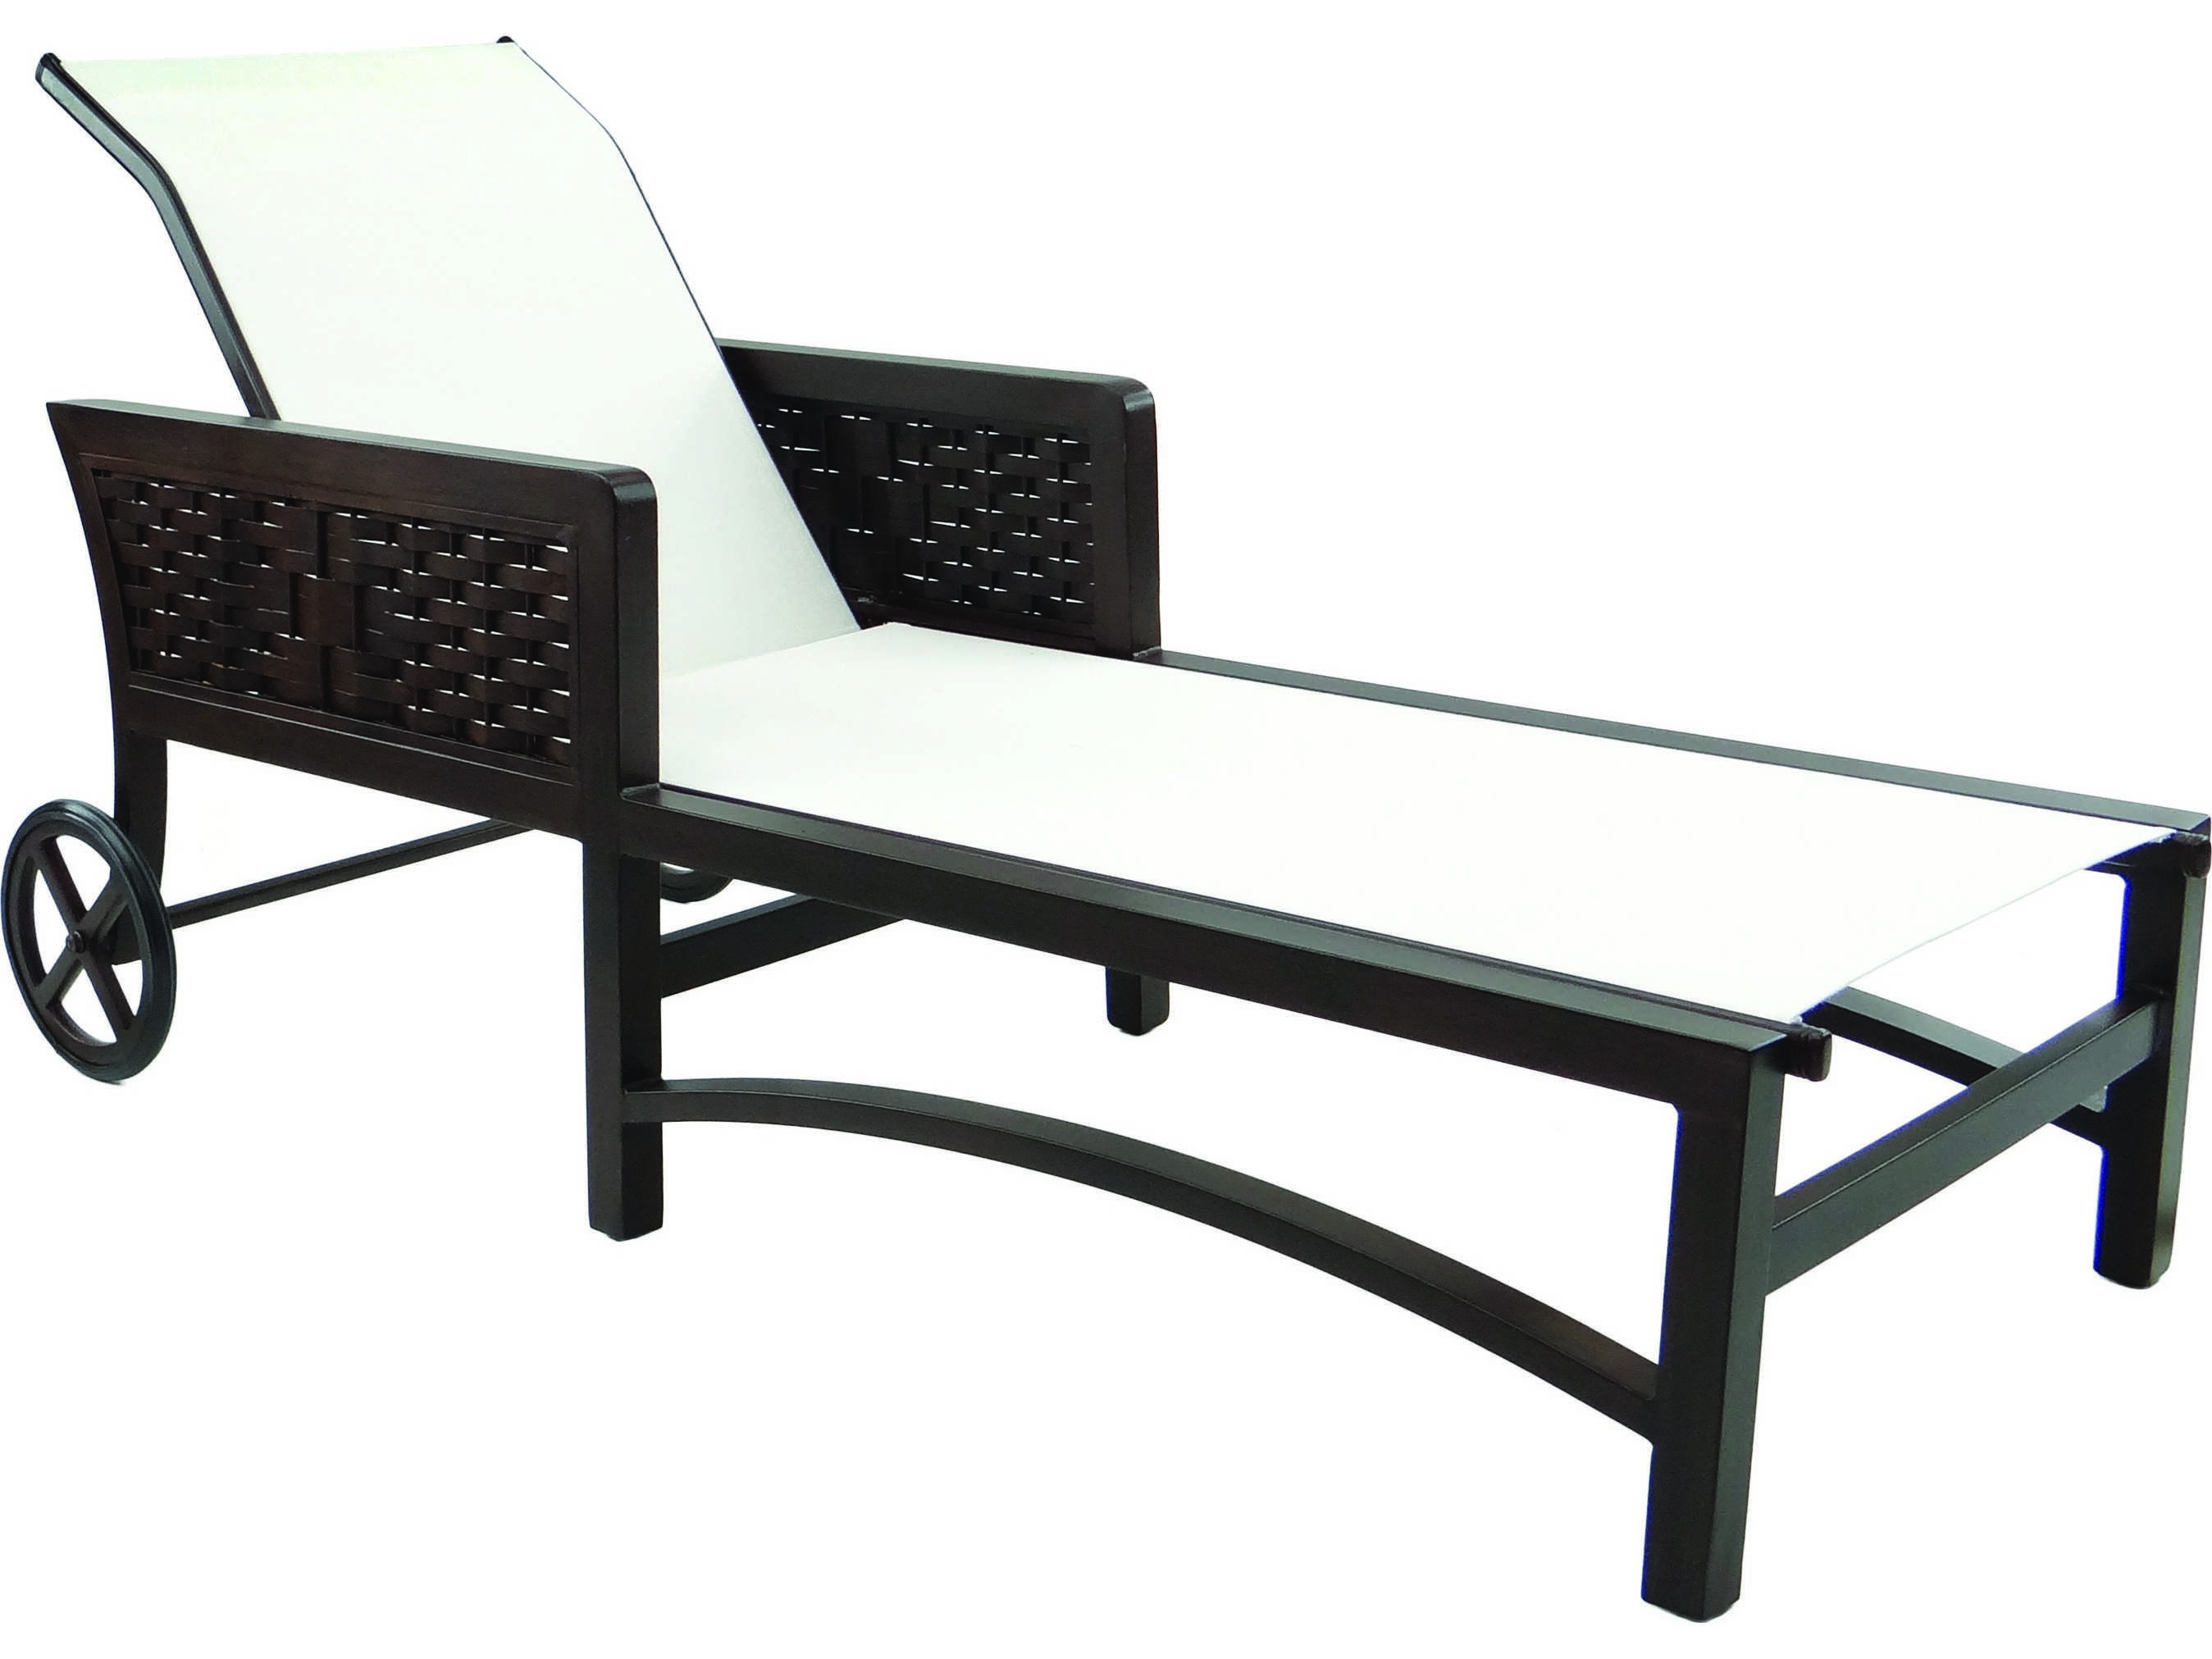 Castelle spanish bay sling aluminum adjustable chaise for Aluminum chaise lounge with wheels